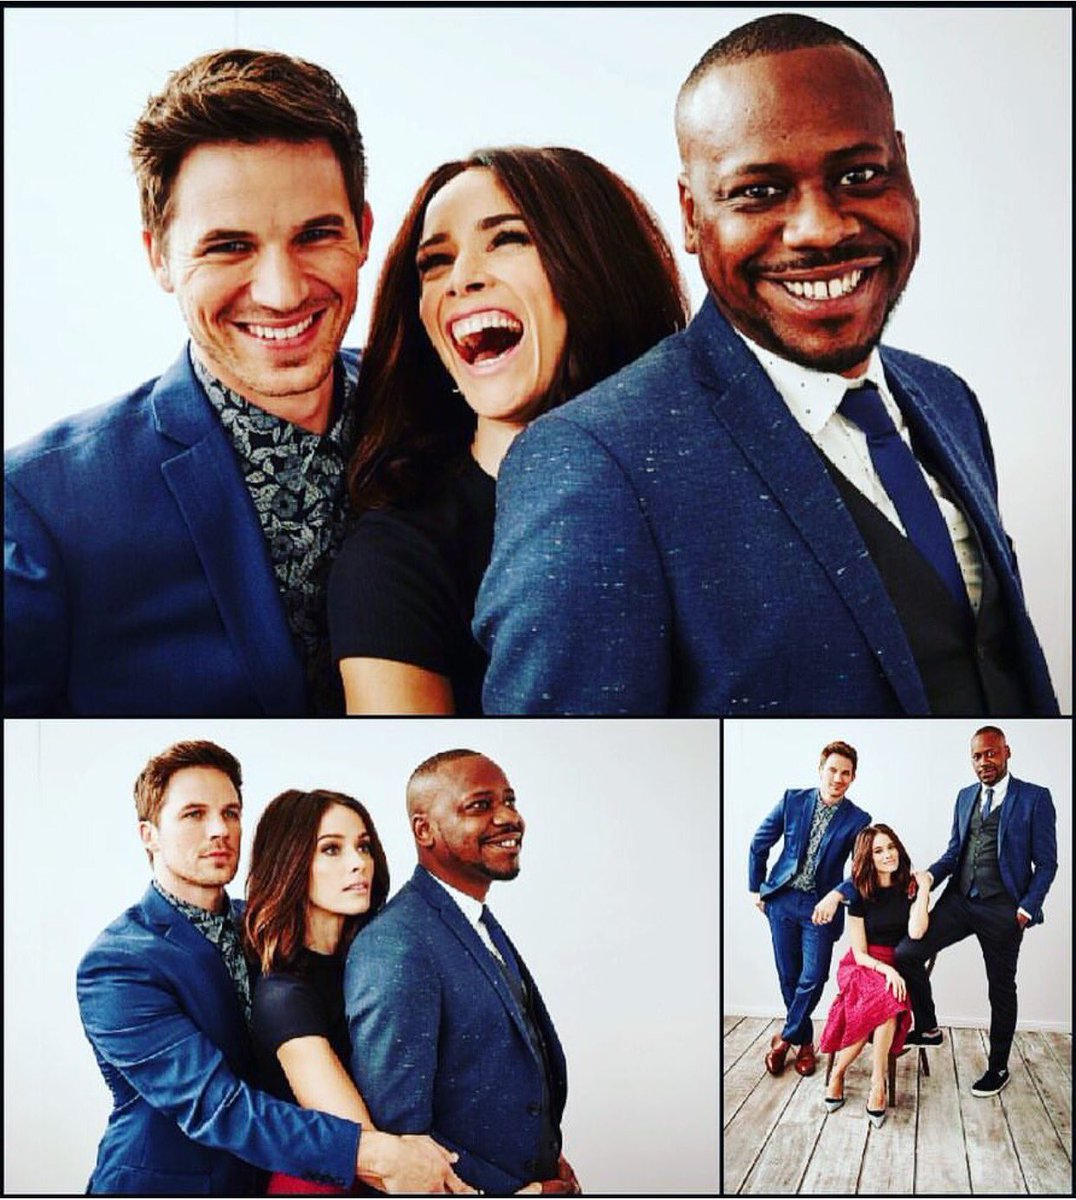 RT @MattLanter: Well #Clockblockers, you've done it again! Let's do a 2 hour movie shall we?  #SaveTimeless https://t.co/BnsbdlEeFG